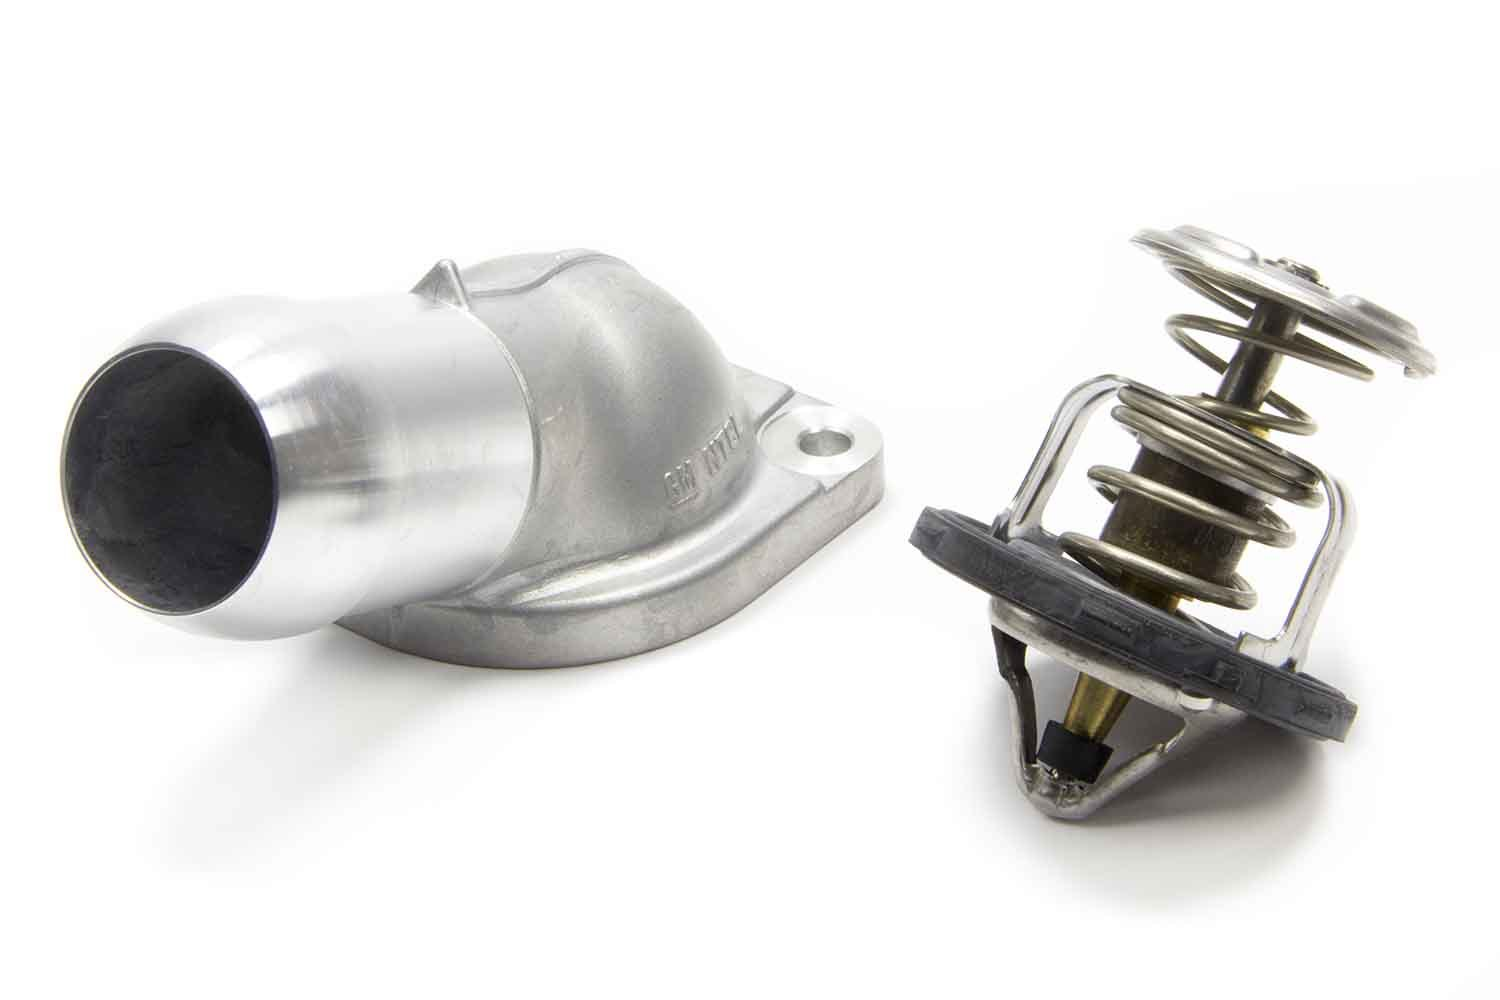 CHEVROLET PERFORMANCE 2pc. Thermostat Housing - LS Series 04 & Later